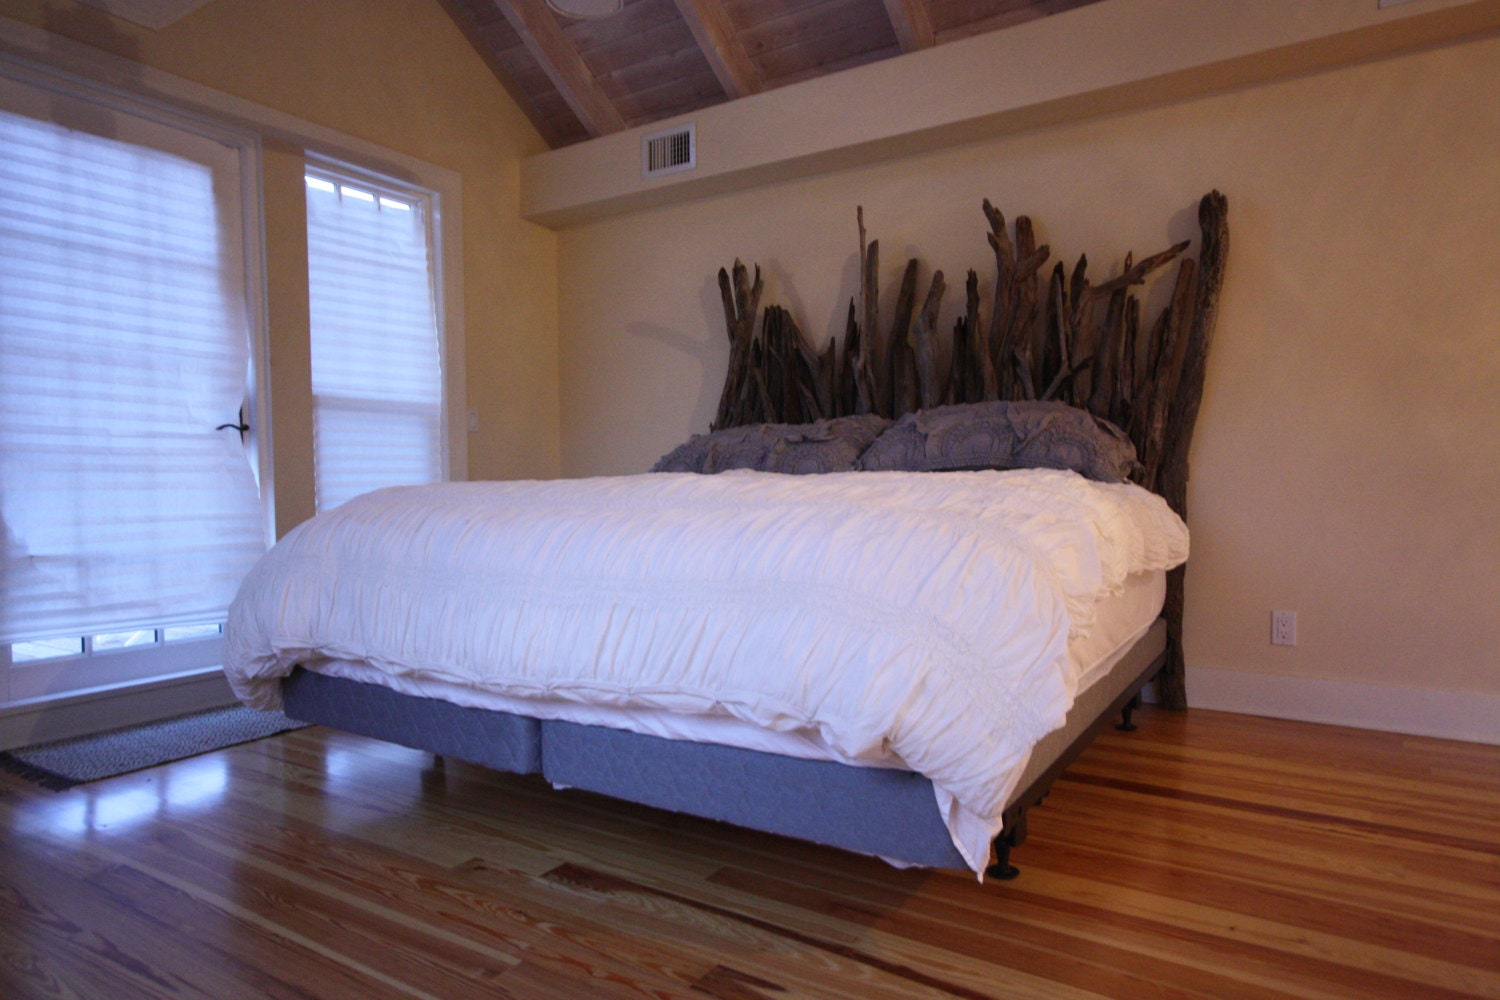 Driftwood Headboard For Twin Full Queen Or King-sized Bed